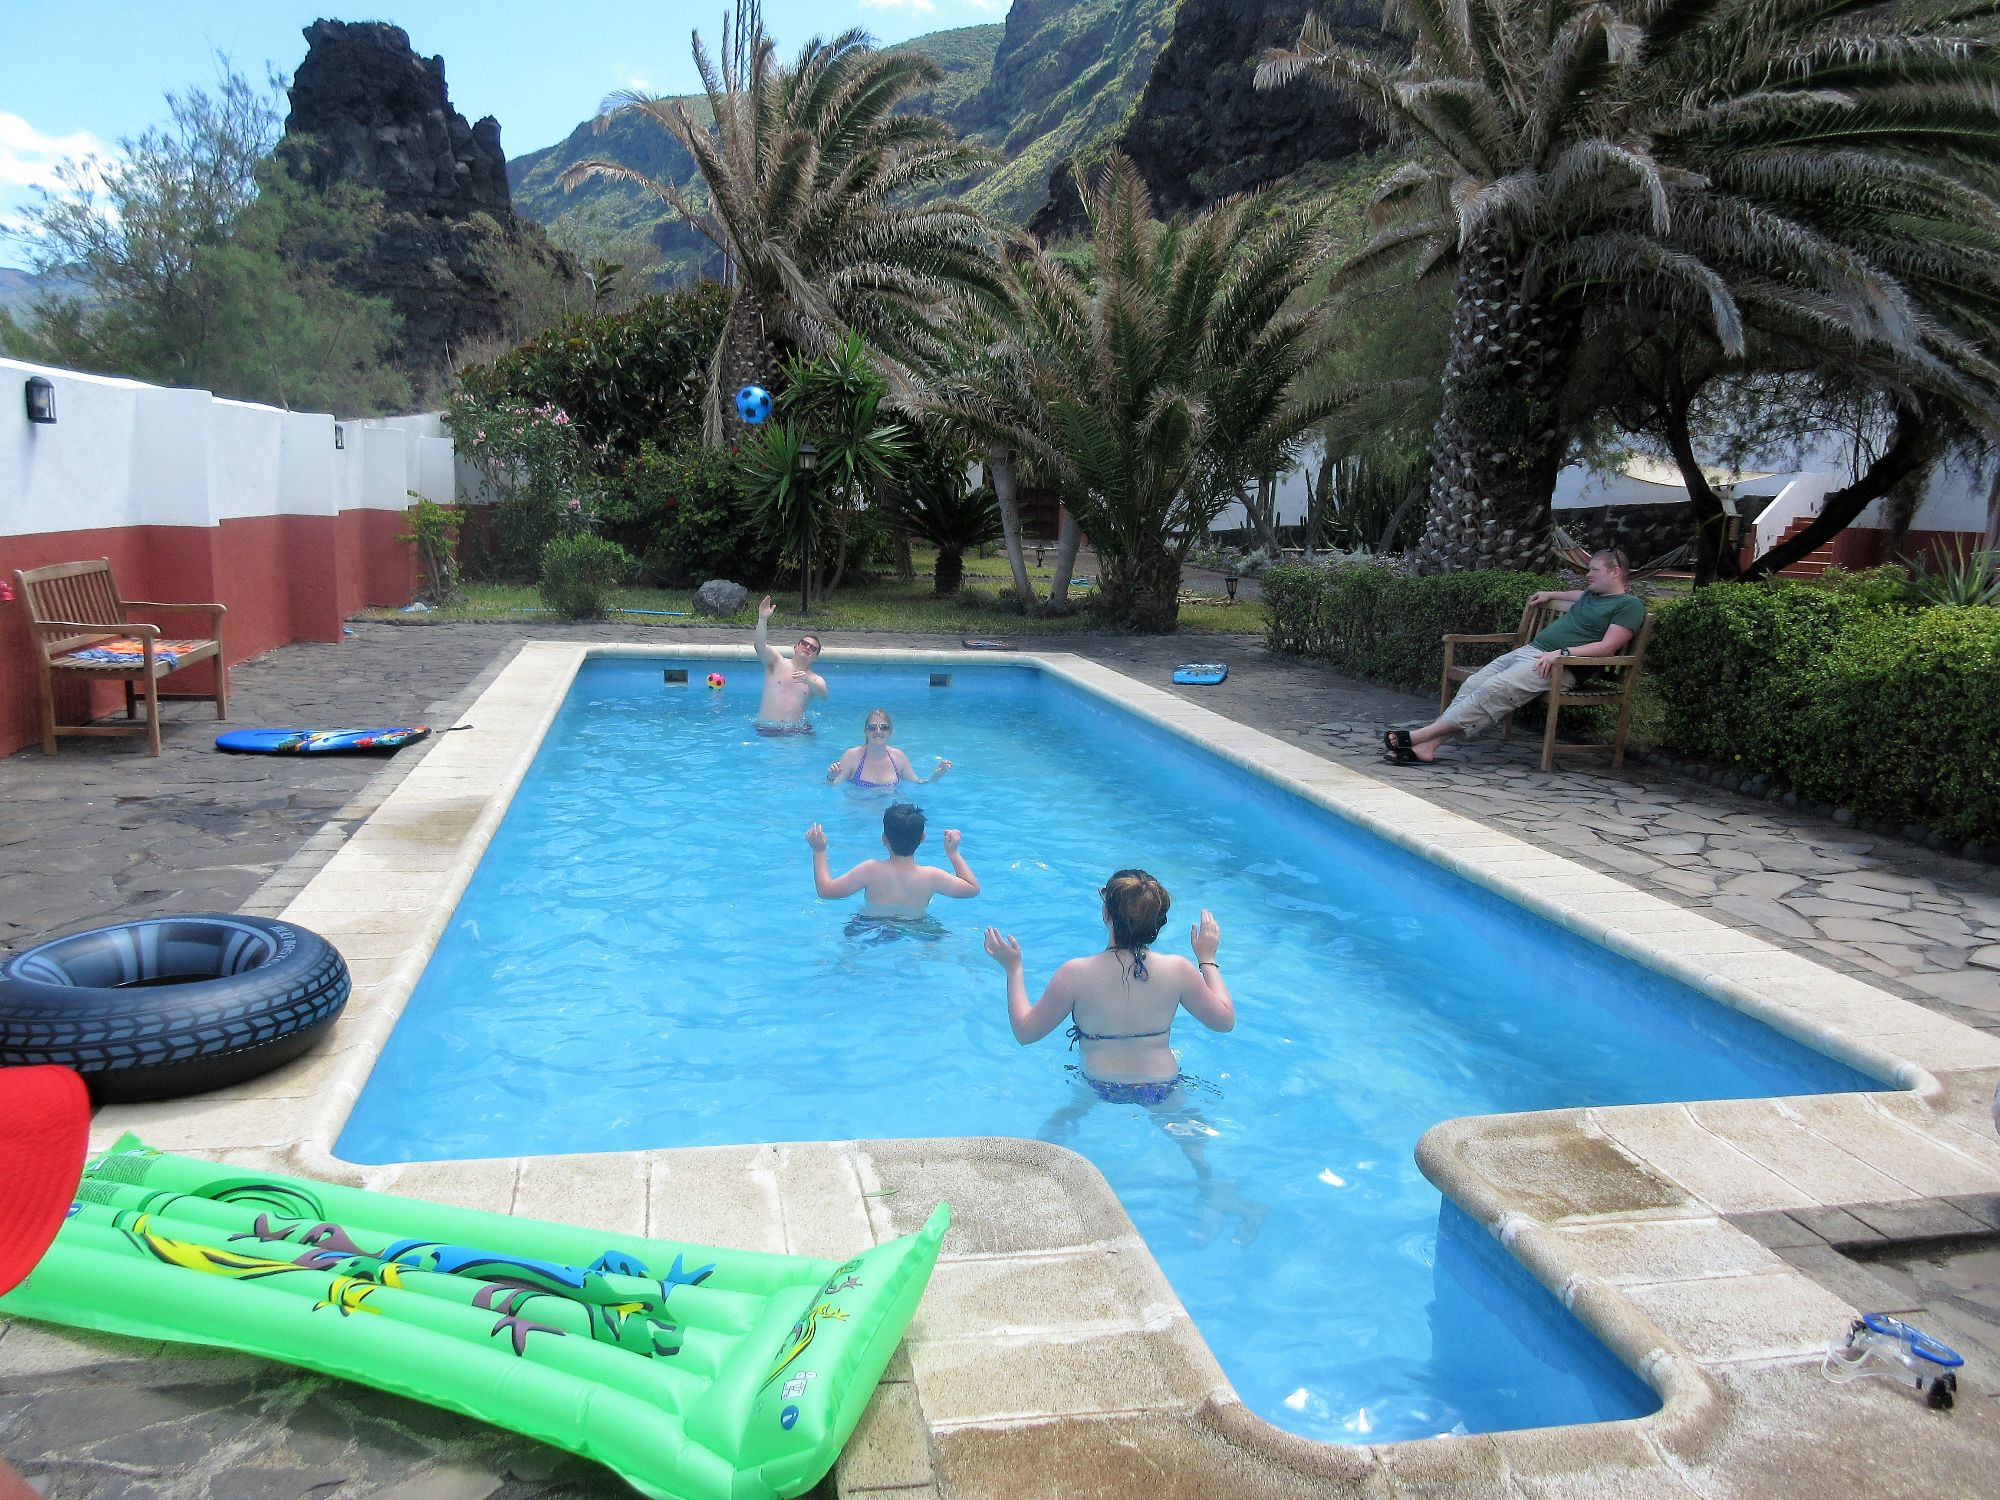 5 x apartments with pool by the sea, Franceses Garafia la Palma